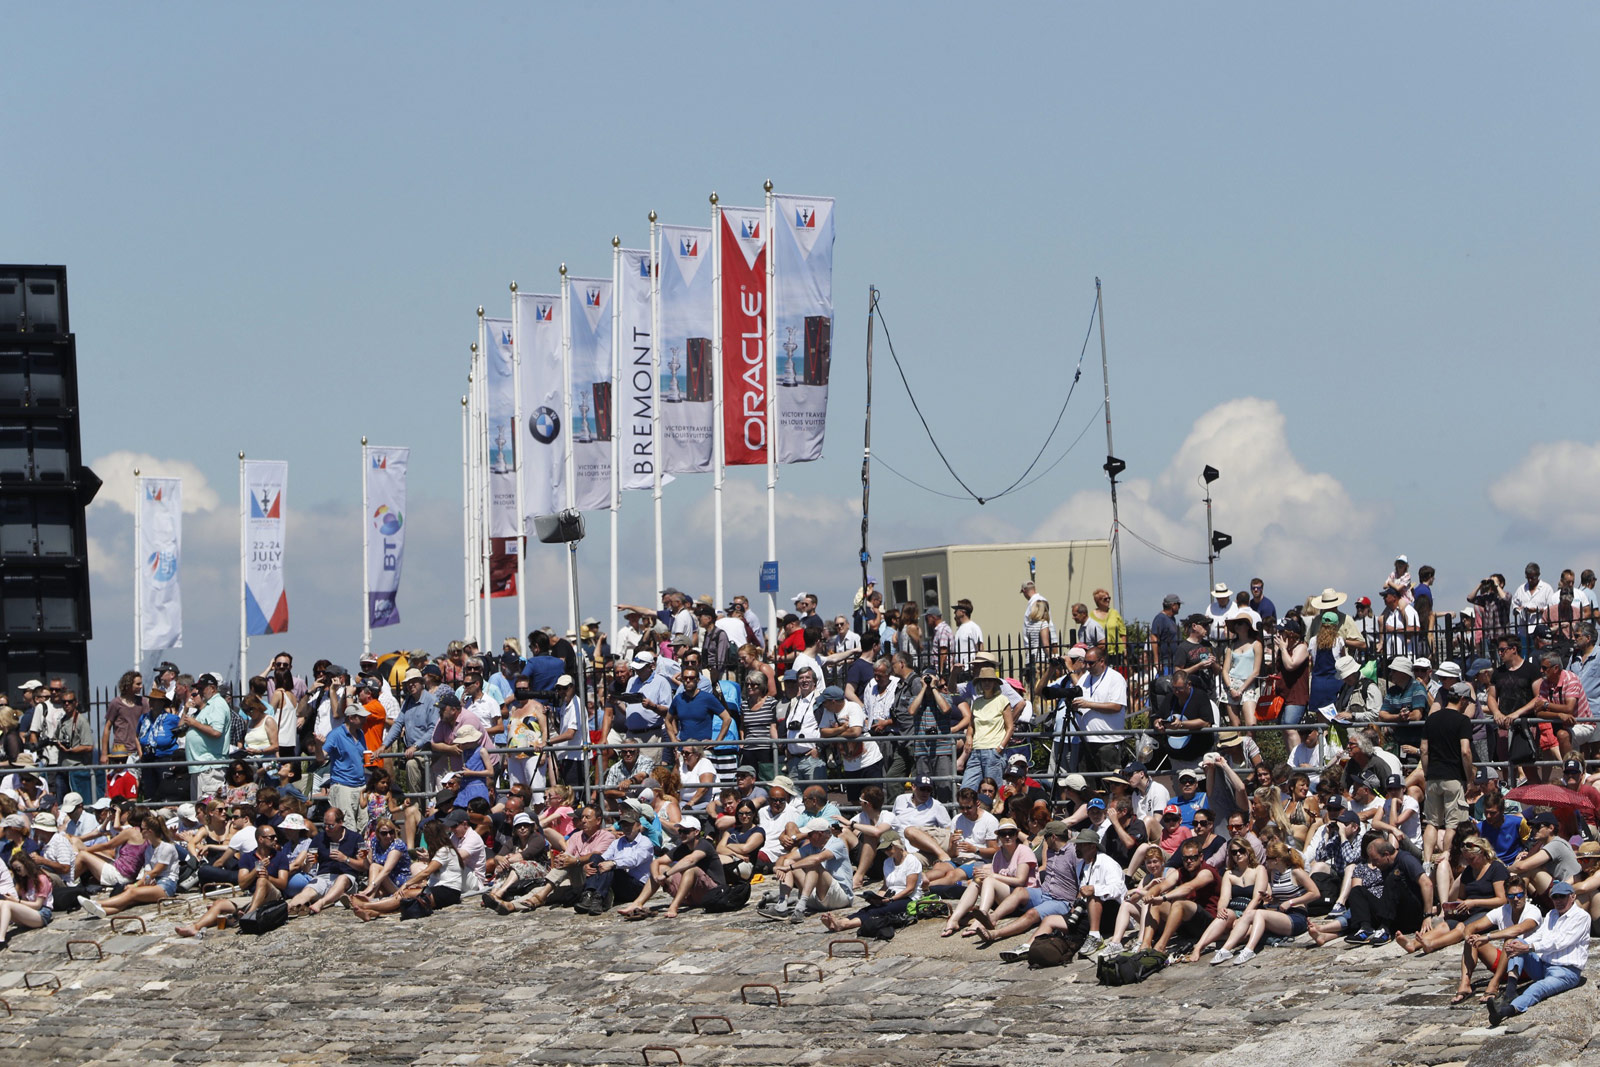 Portsmouth-America-Cup-World-Series-crowds